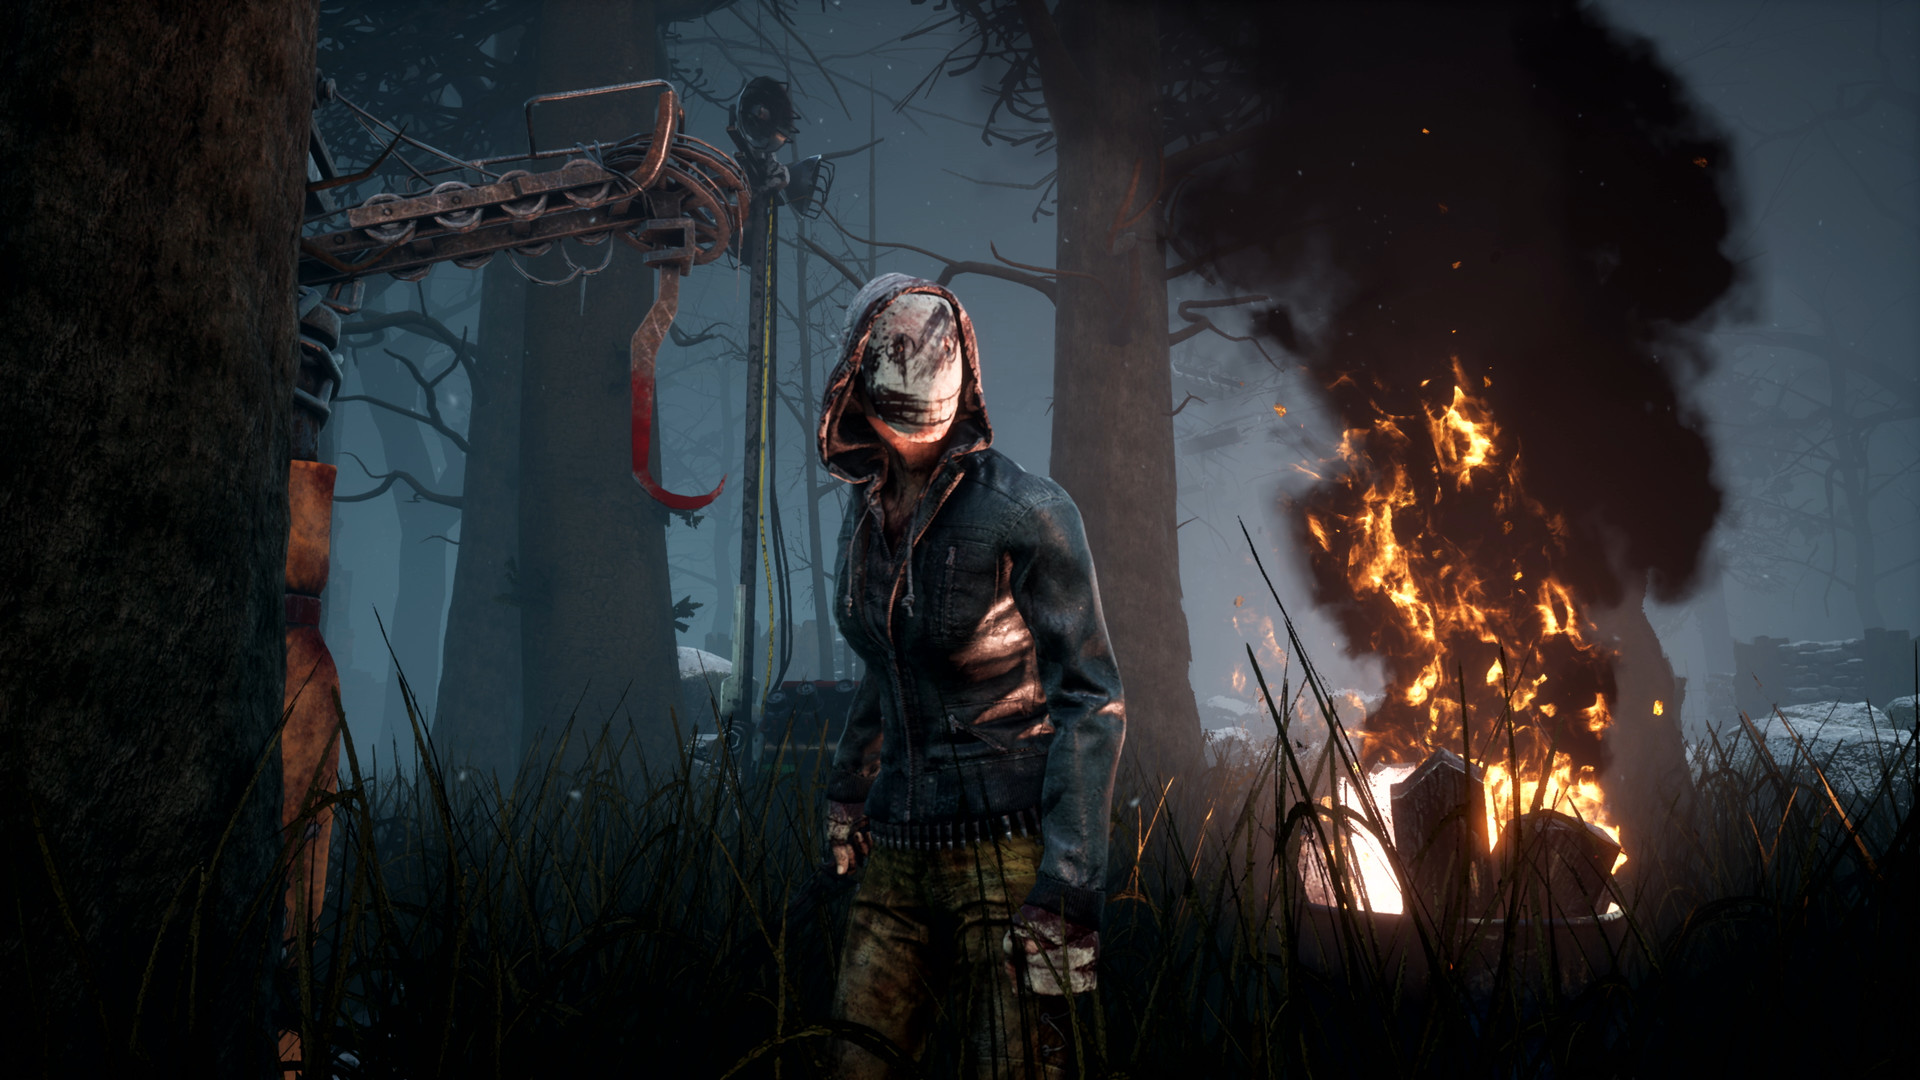 KHAiHOM.com - Dead by Daylight - Darkness Among Us Chapter